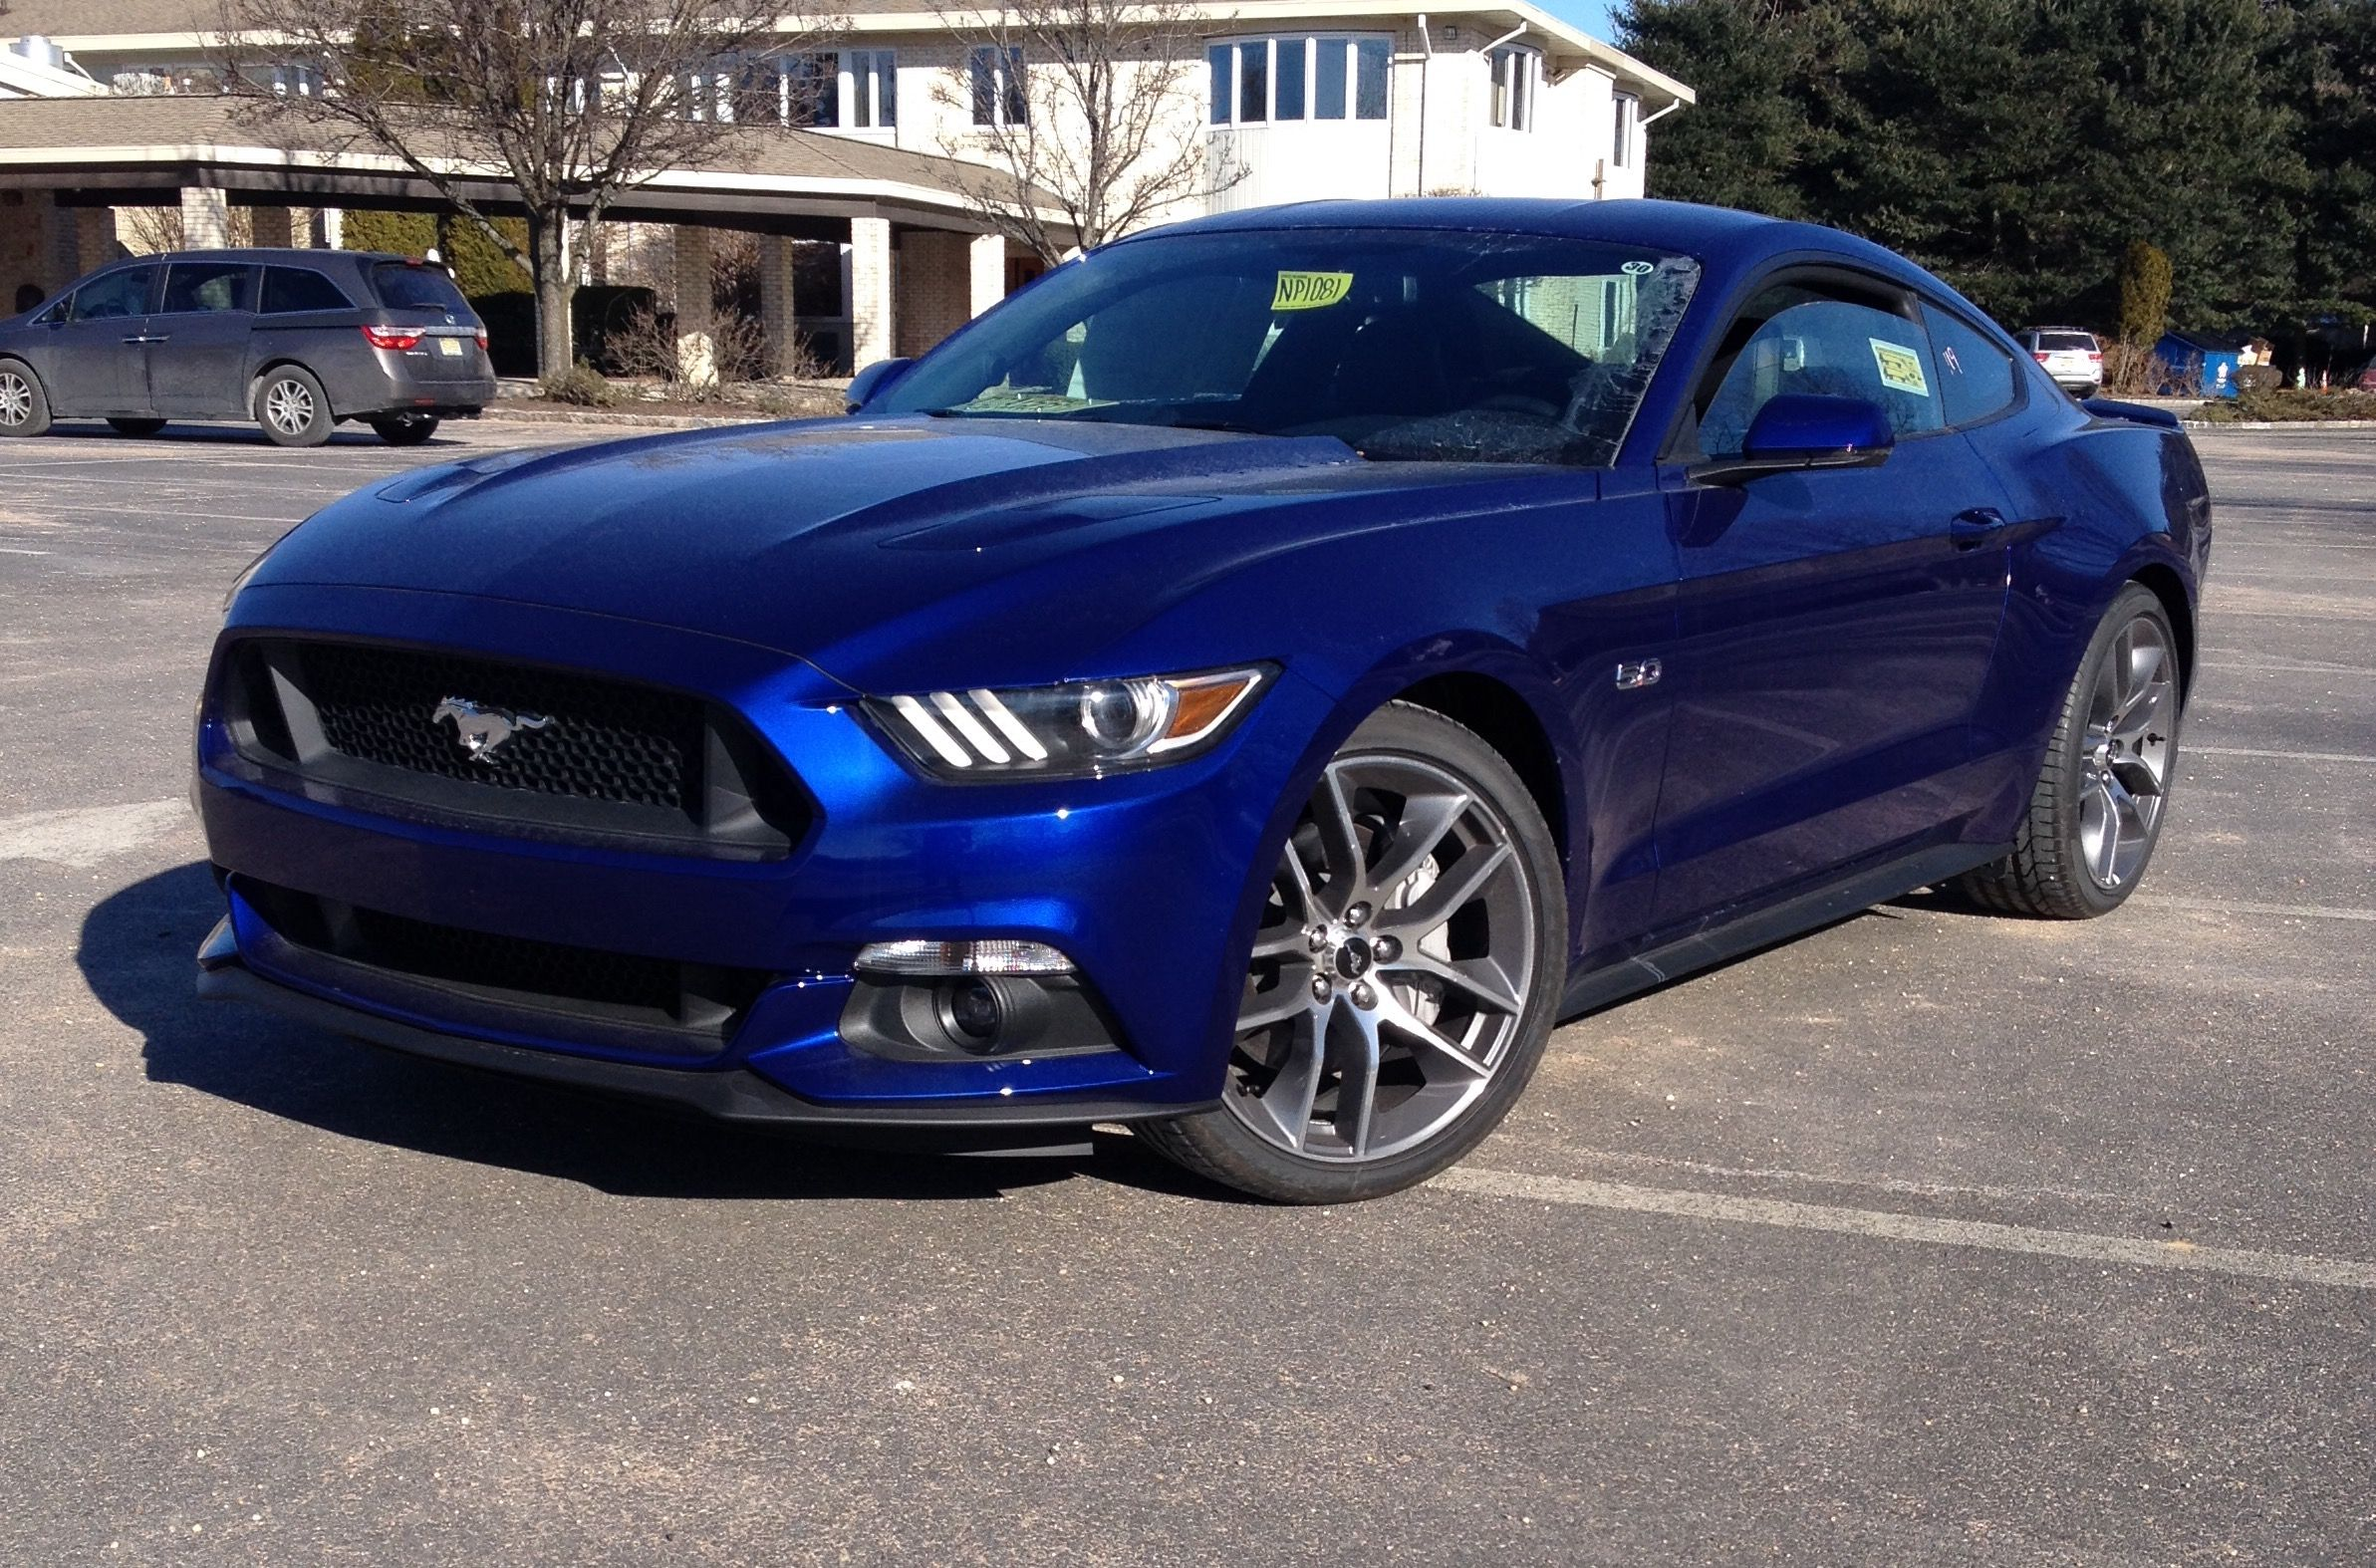 2015 Ford Mustang Gt Review Blue Mustang 2015 Ford Mustang